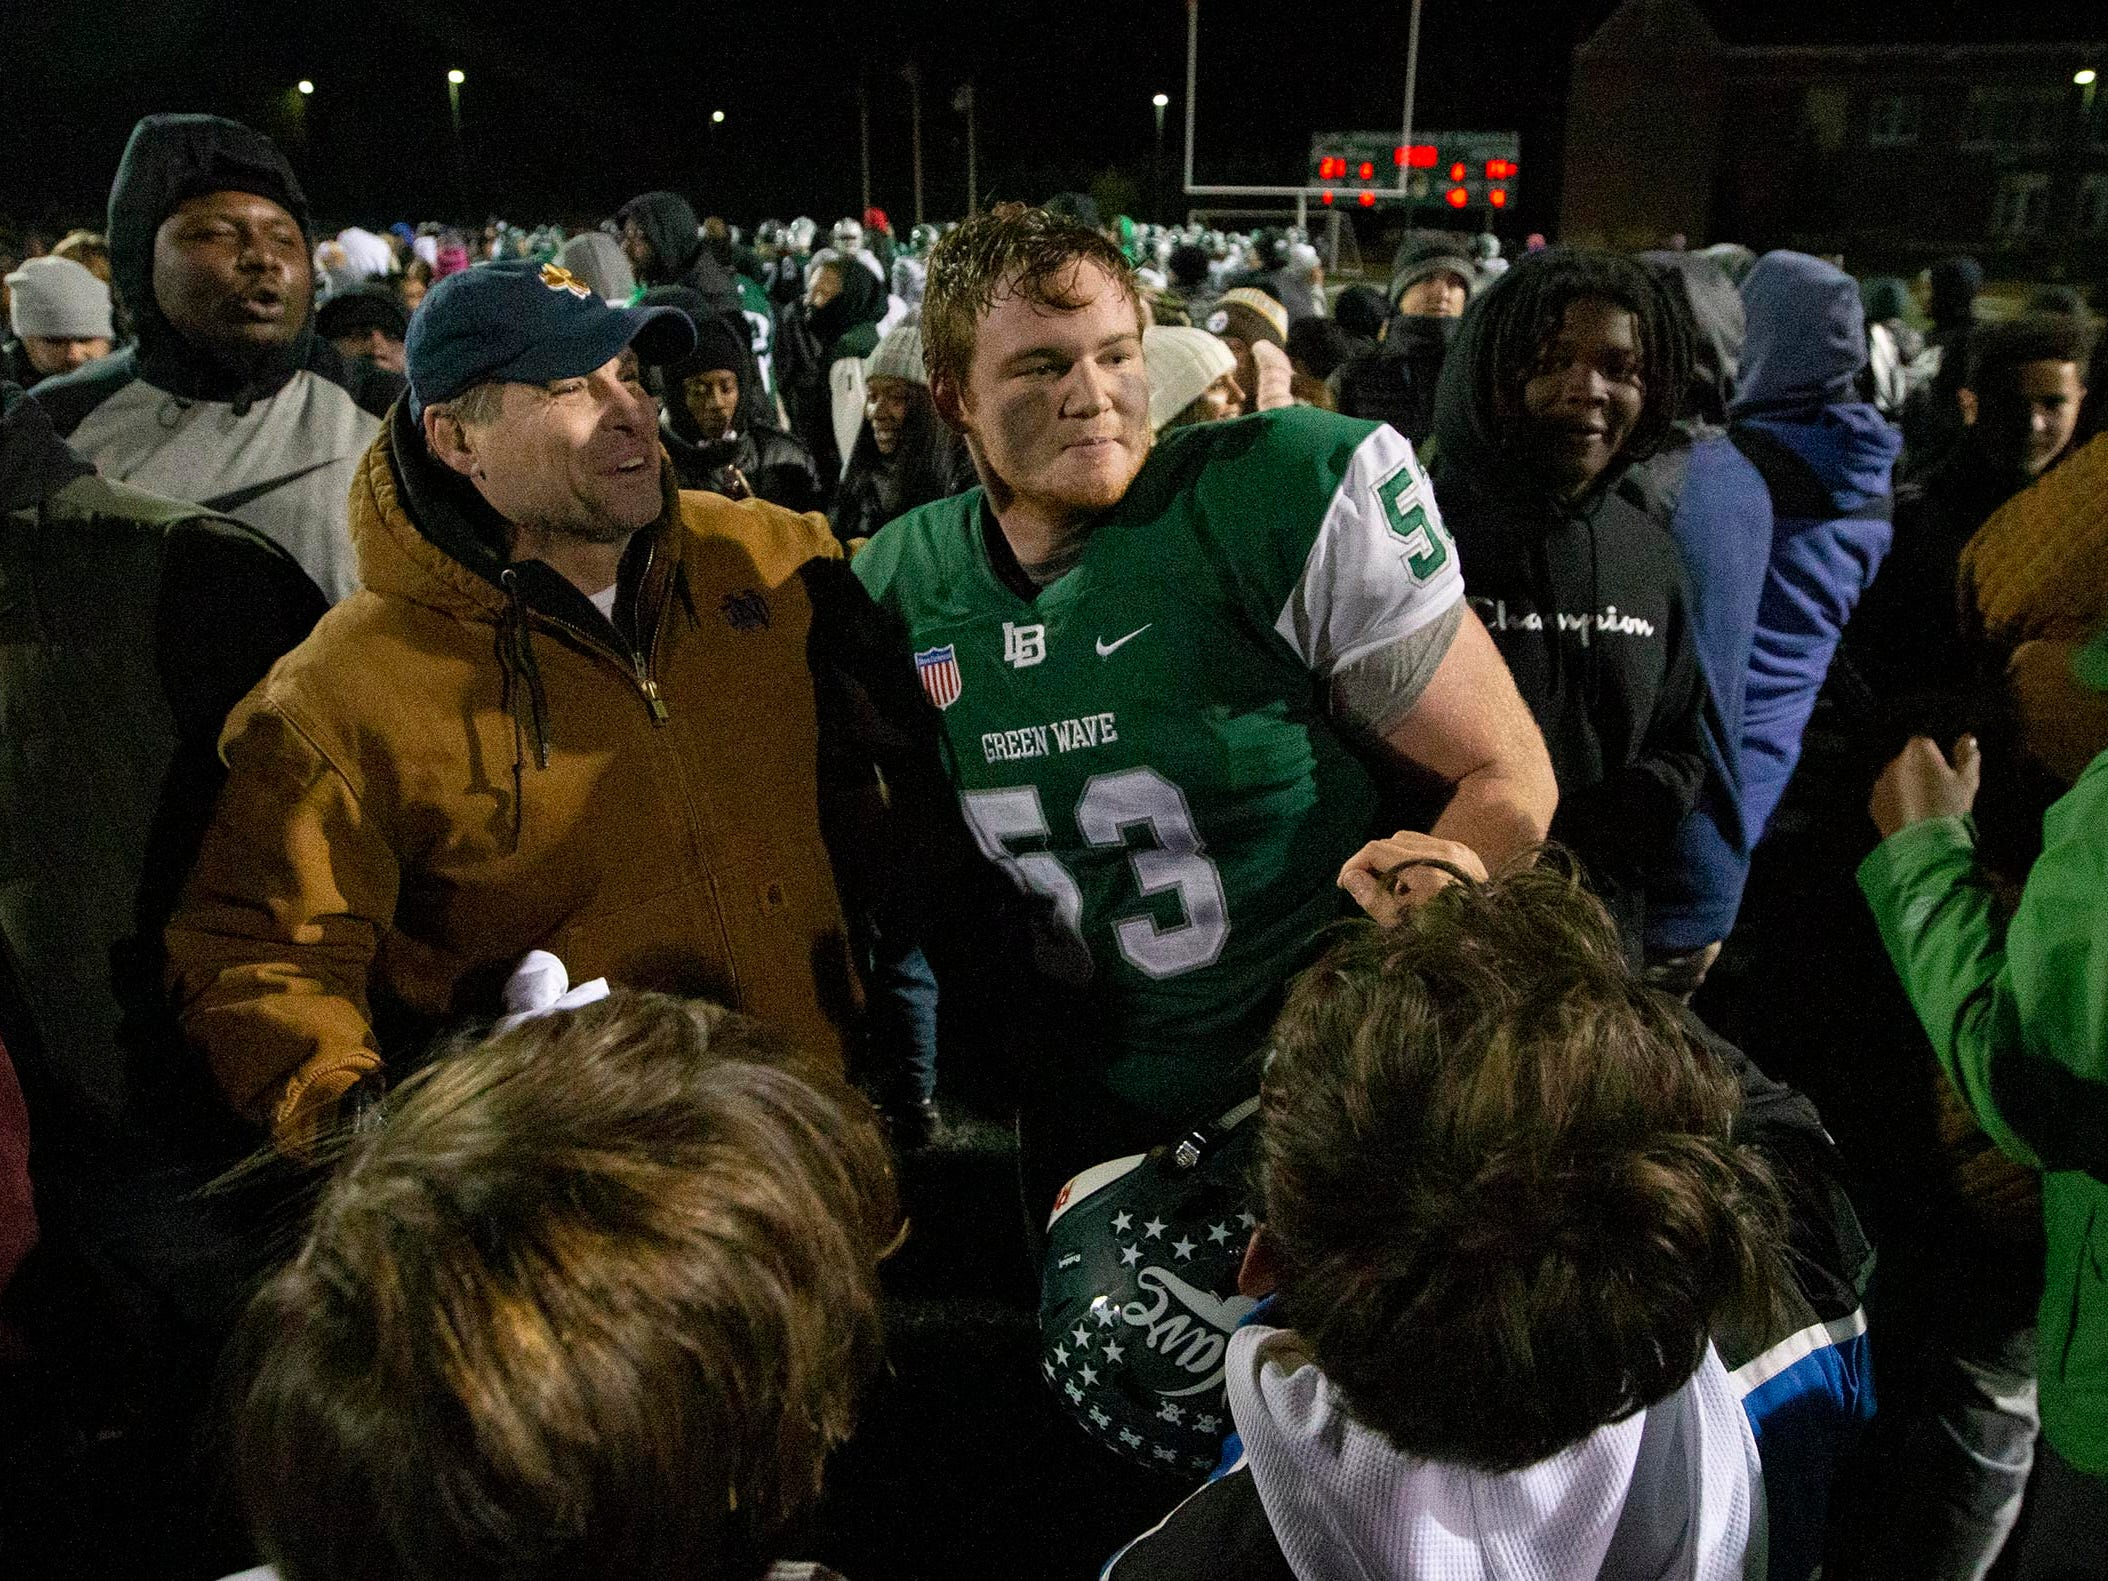 Long Branch's Kevin Cerruti celebrates with the fans. Brick at Long Branch NJSIAA Central Jersey Group IV championship football game.